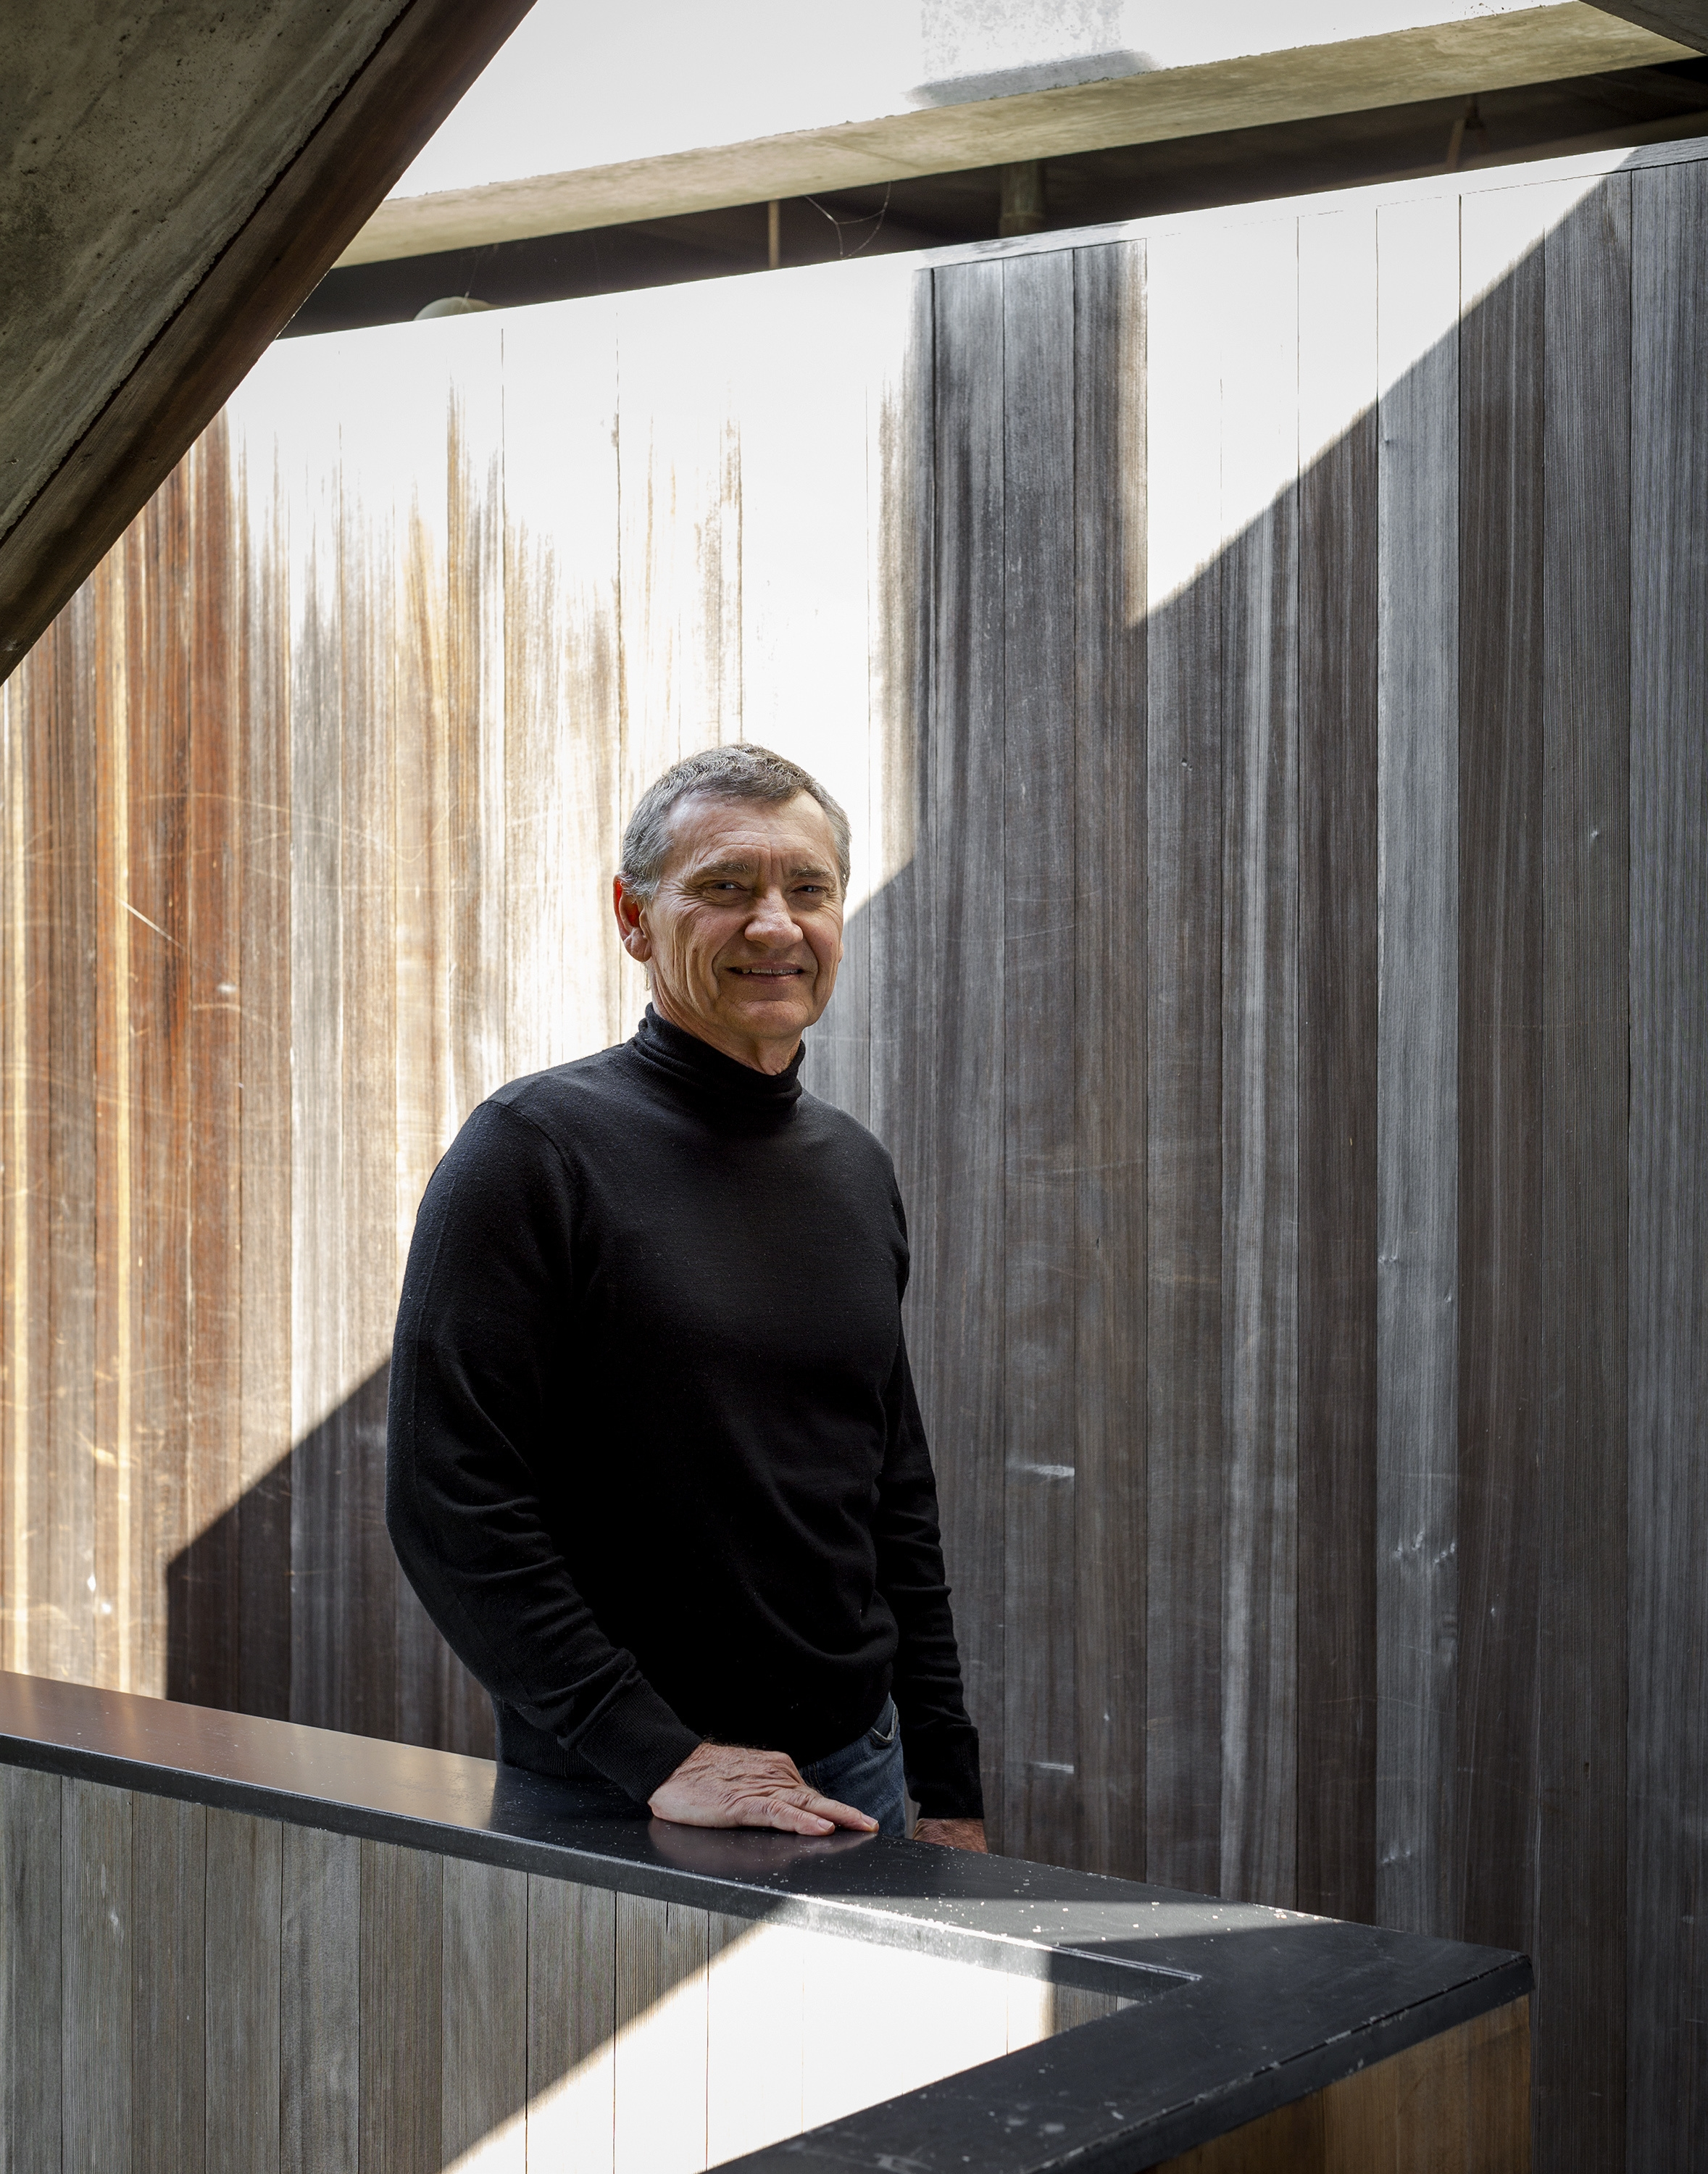 Robert Bridges at his home in Los Angeles, May 28, 2013. Built on concrete columns and cantilevered over the hillside, Bridges' brutalist home has become a Sunset Boulevard landmark. (Trevor Tondro/The New York Times)